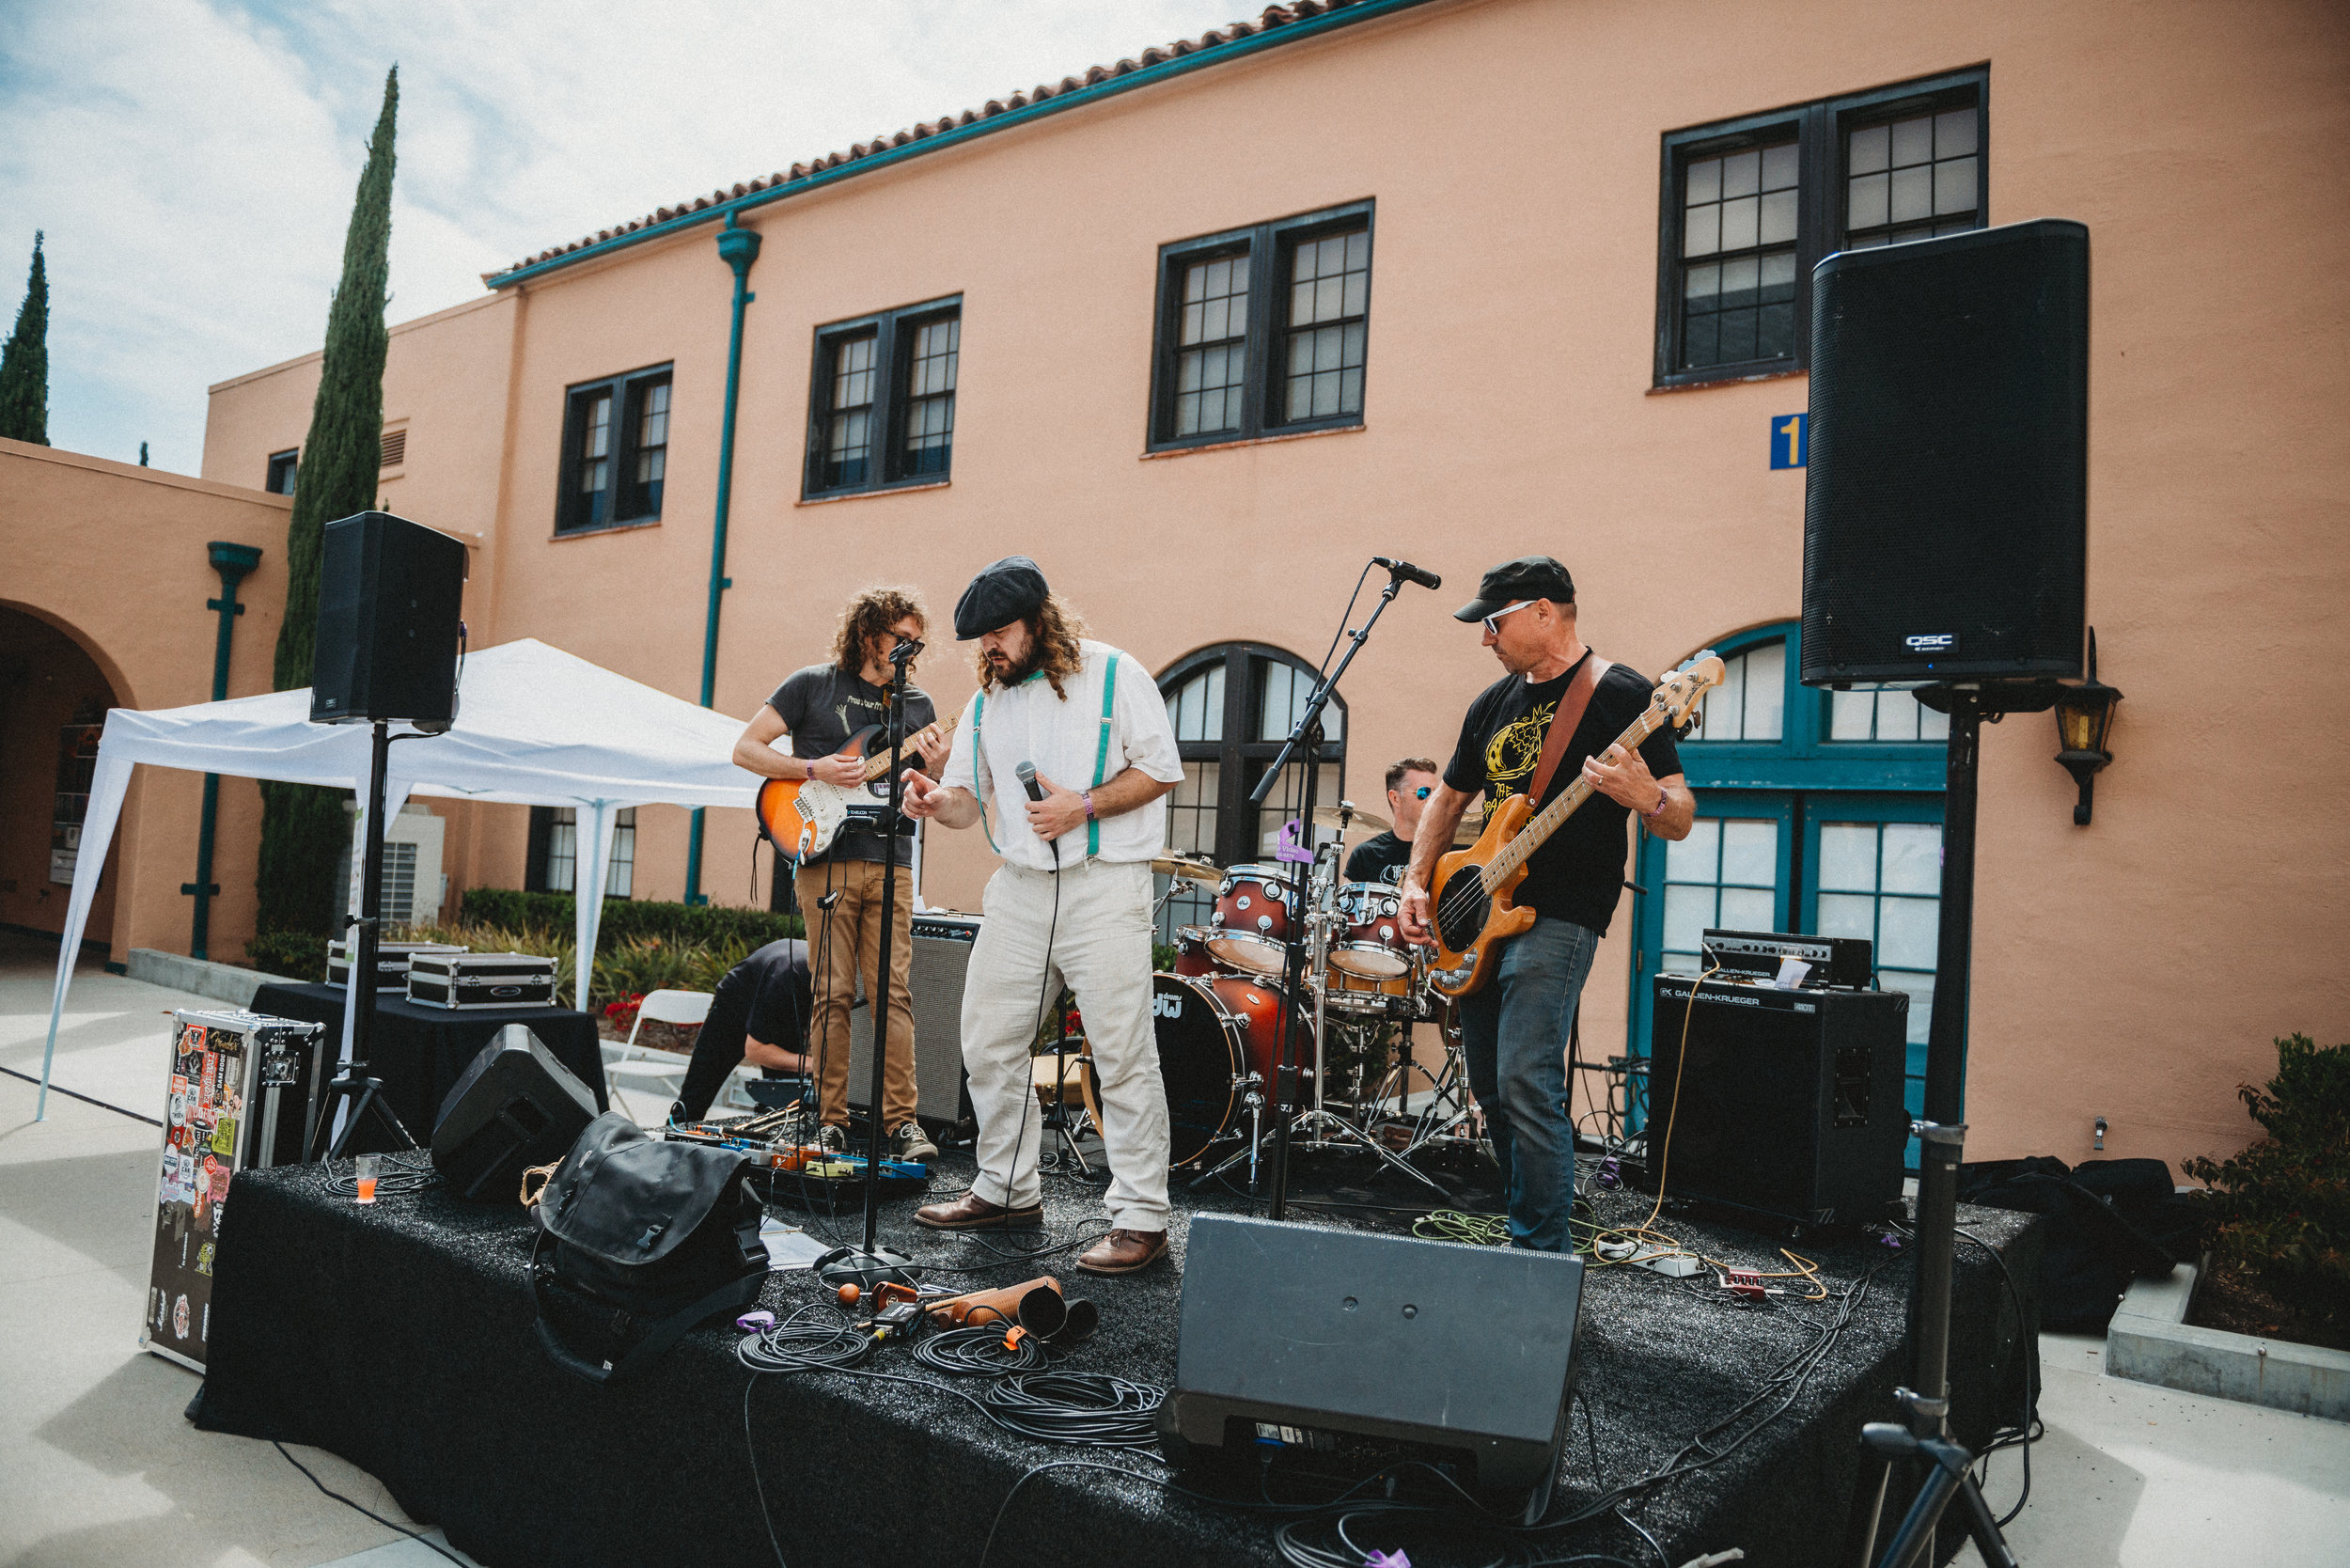 Nothing beats a good 'ol live band! Having available space to get creative and add whatever one can dream up is one of the many reason we love the Barracks 17 venue.